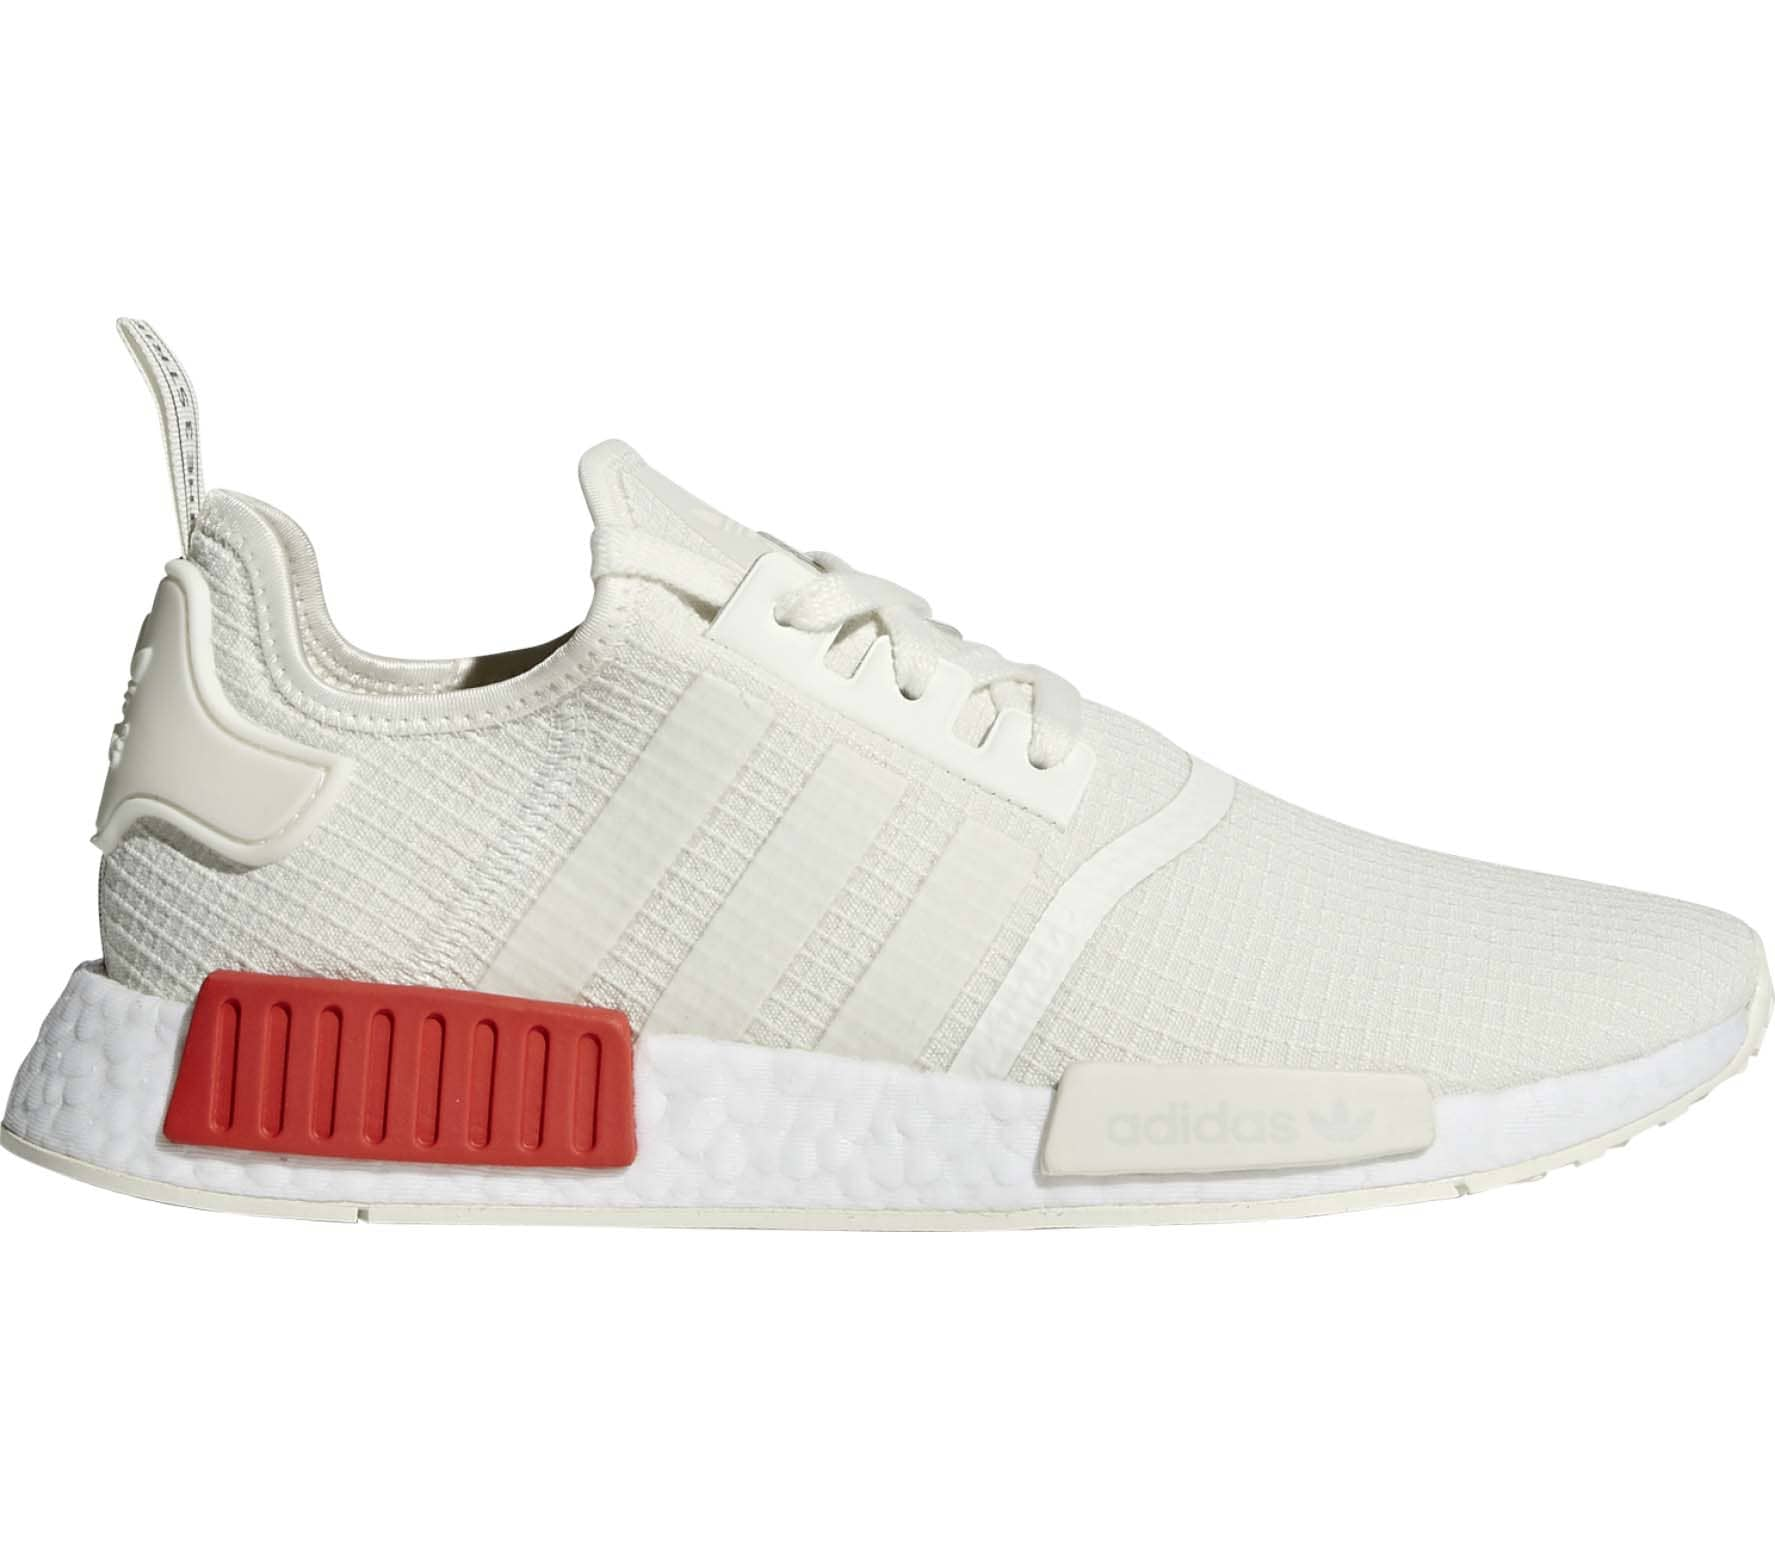 lowest price afc40 a1f0a adidas Originals - NMD R1 men s trainers (white)